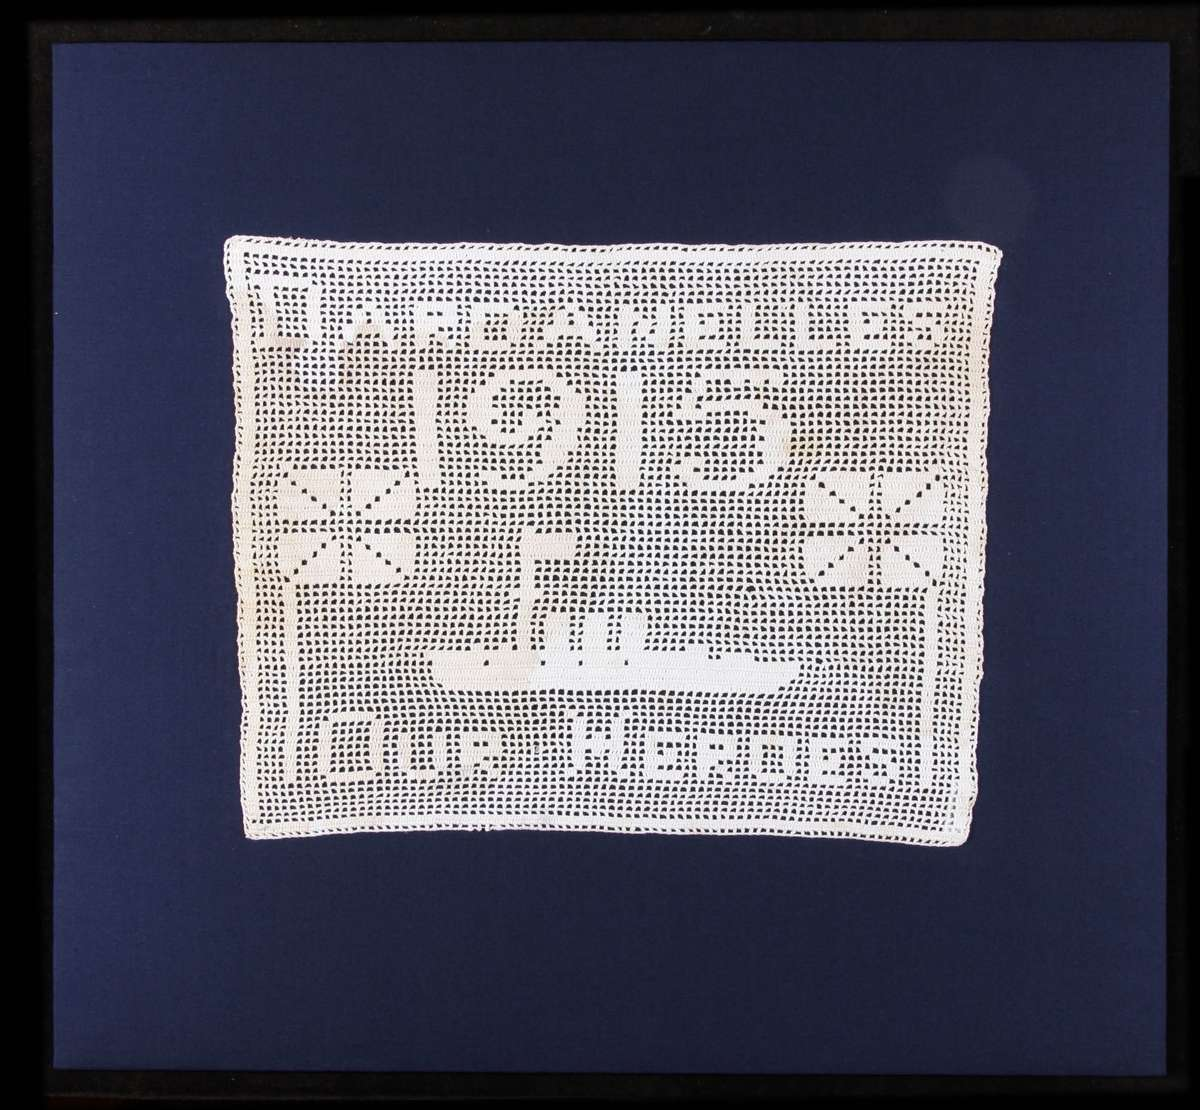 Hand crocheted cloth c 1915, ANMM Collection